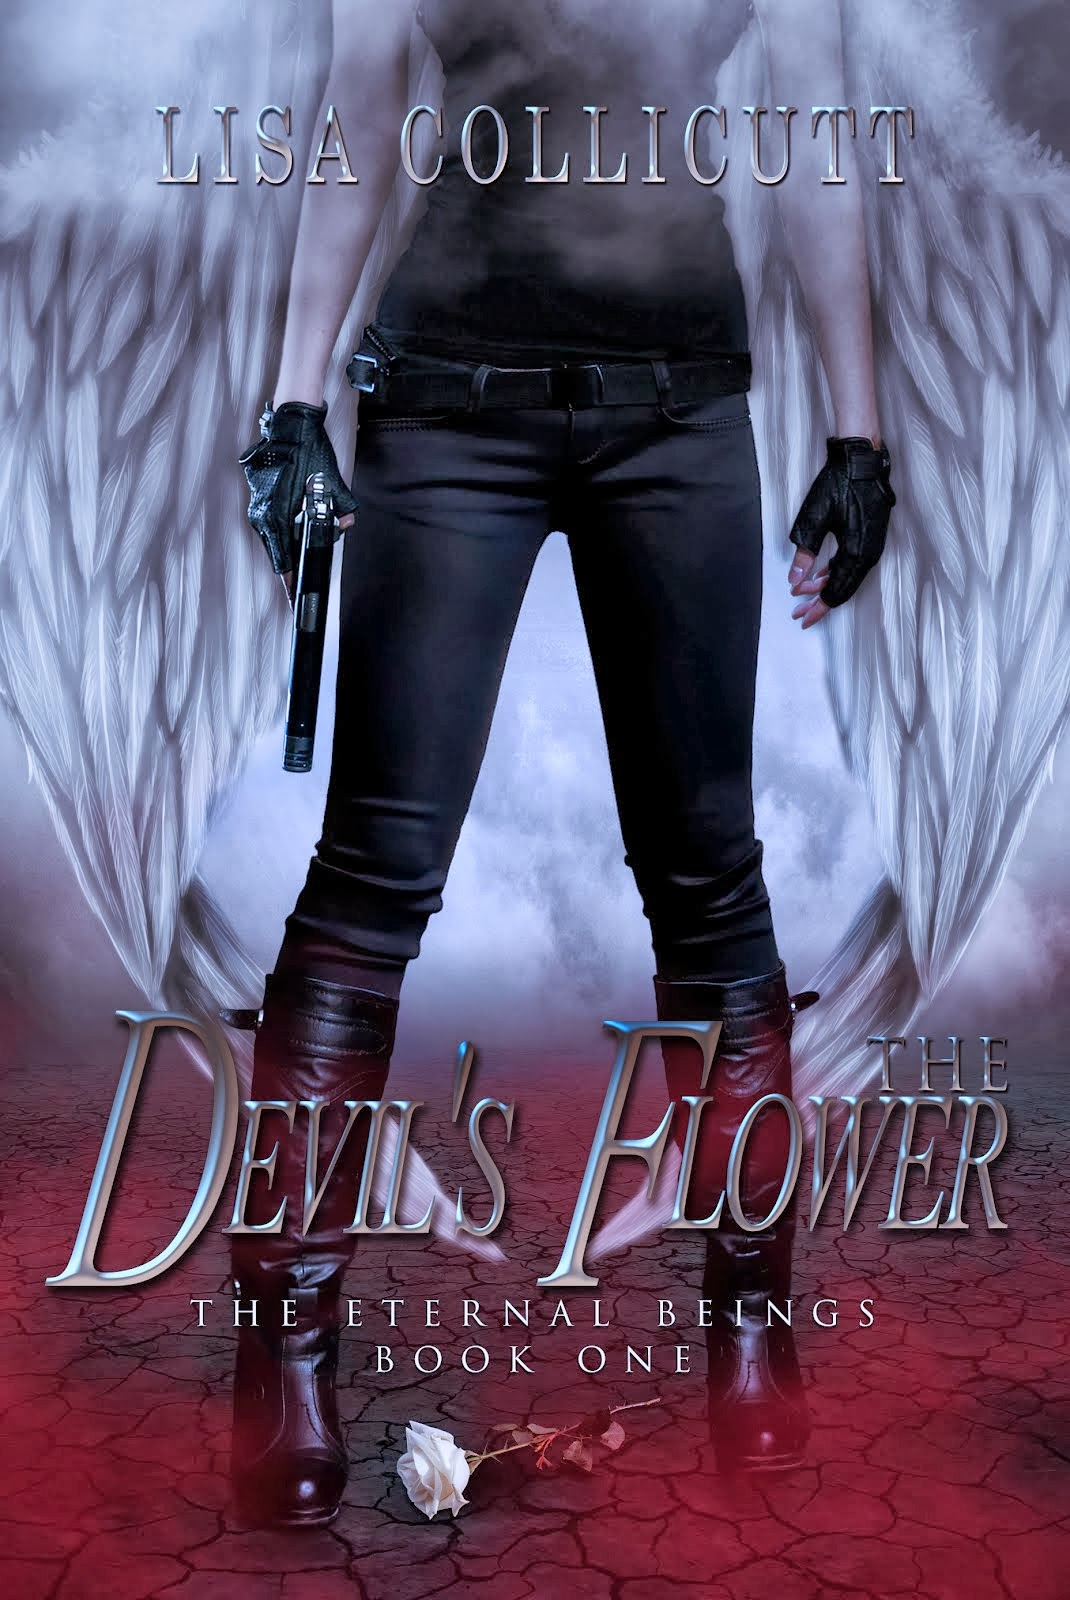 The Devil's Flower